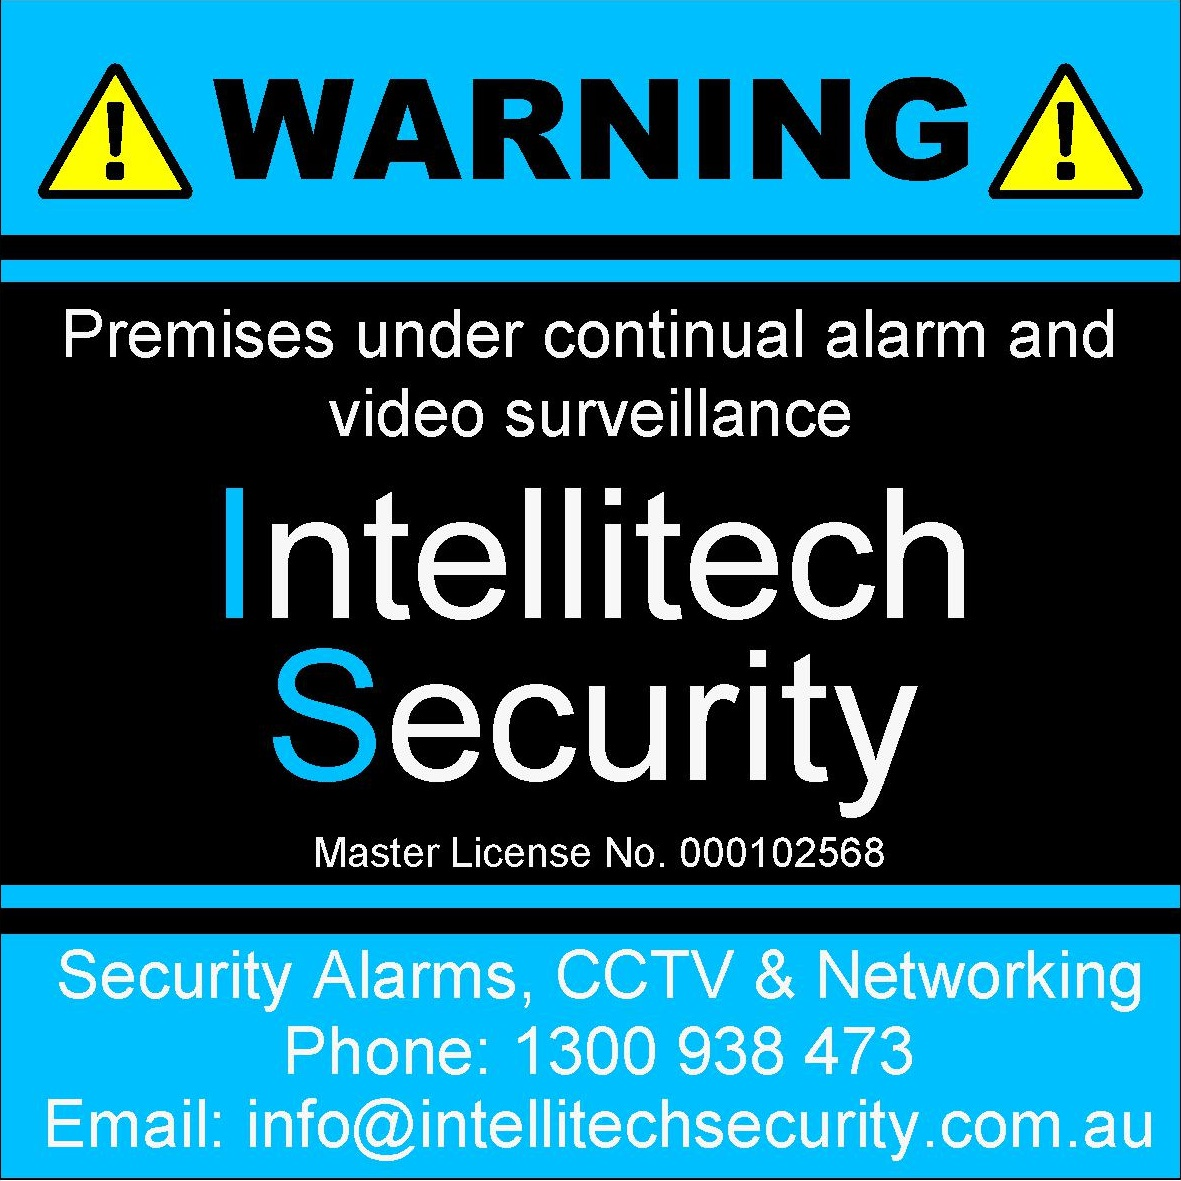 Intellitech Security